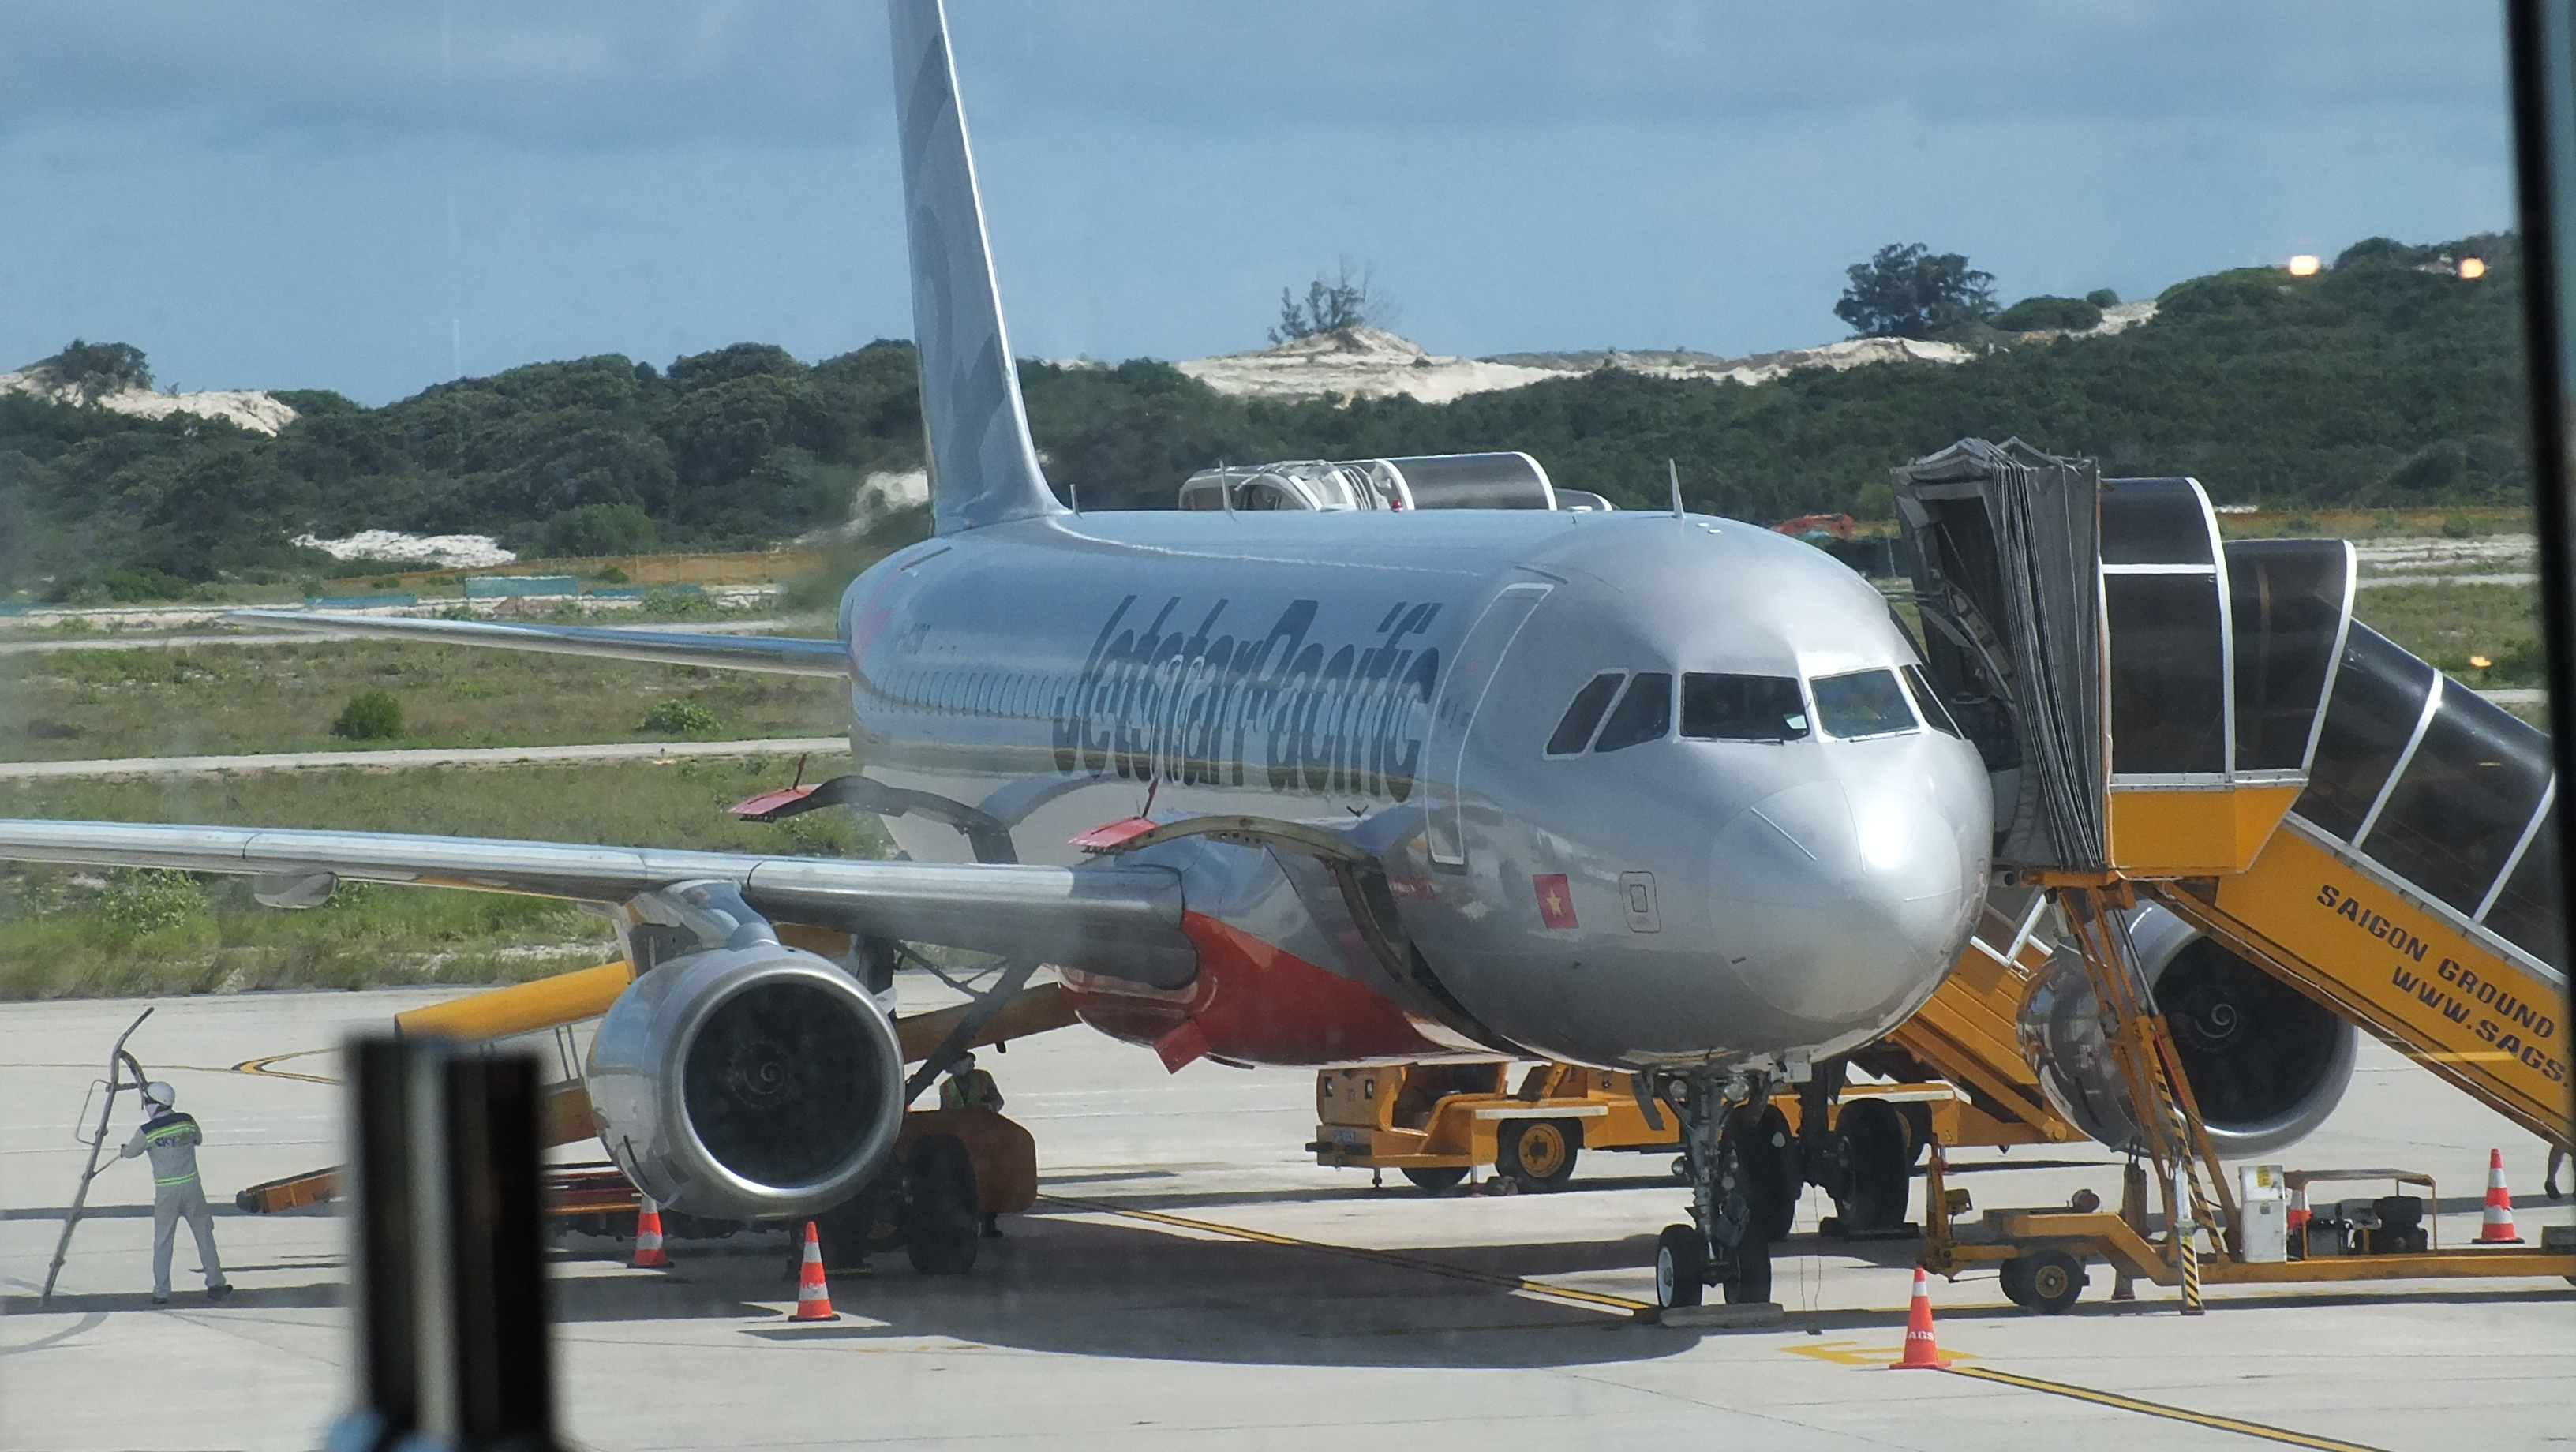 An Airbus A320 of Jetstar Pacific at the airport, Cam Ranh